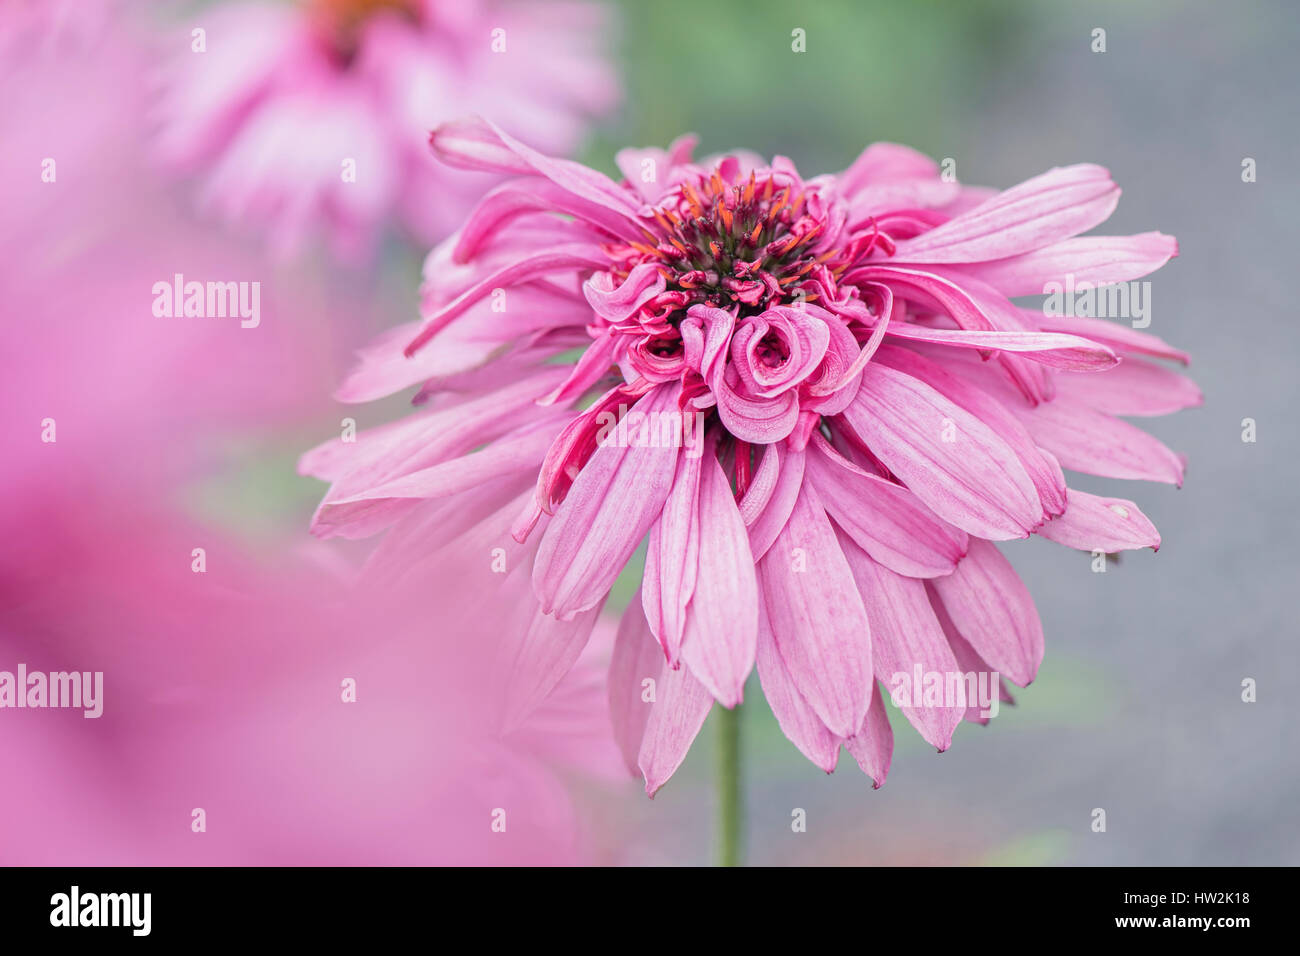 The beautiful Echinacea purpurea 'Pink Poodle' double-flowered purple Coneflower. - Stock Image